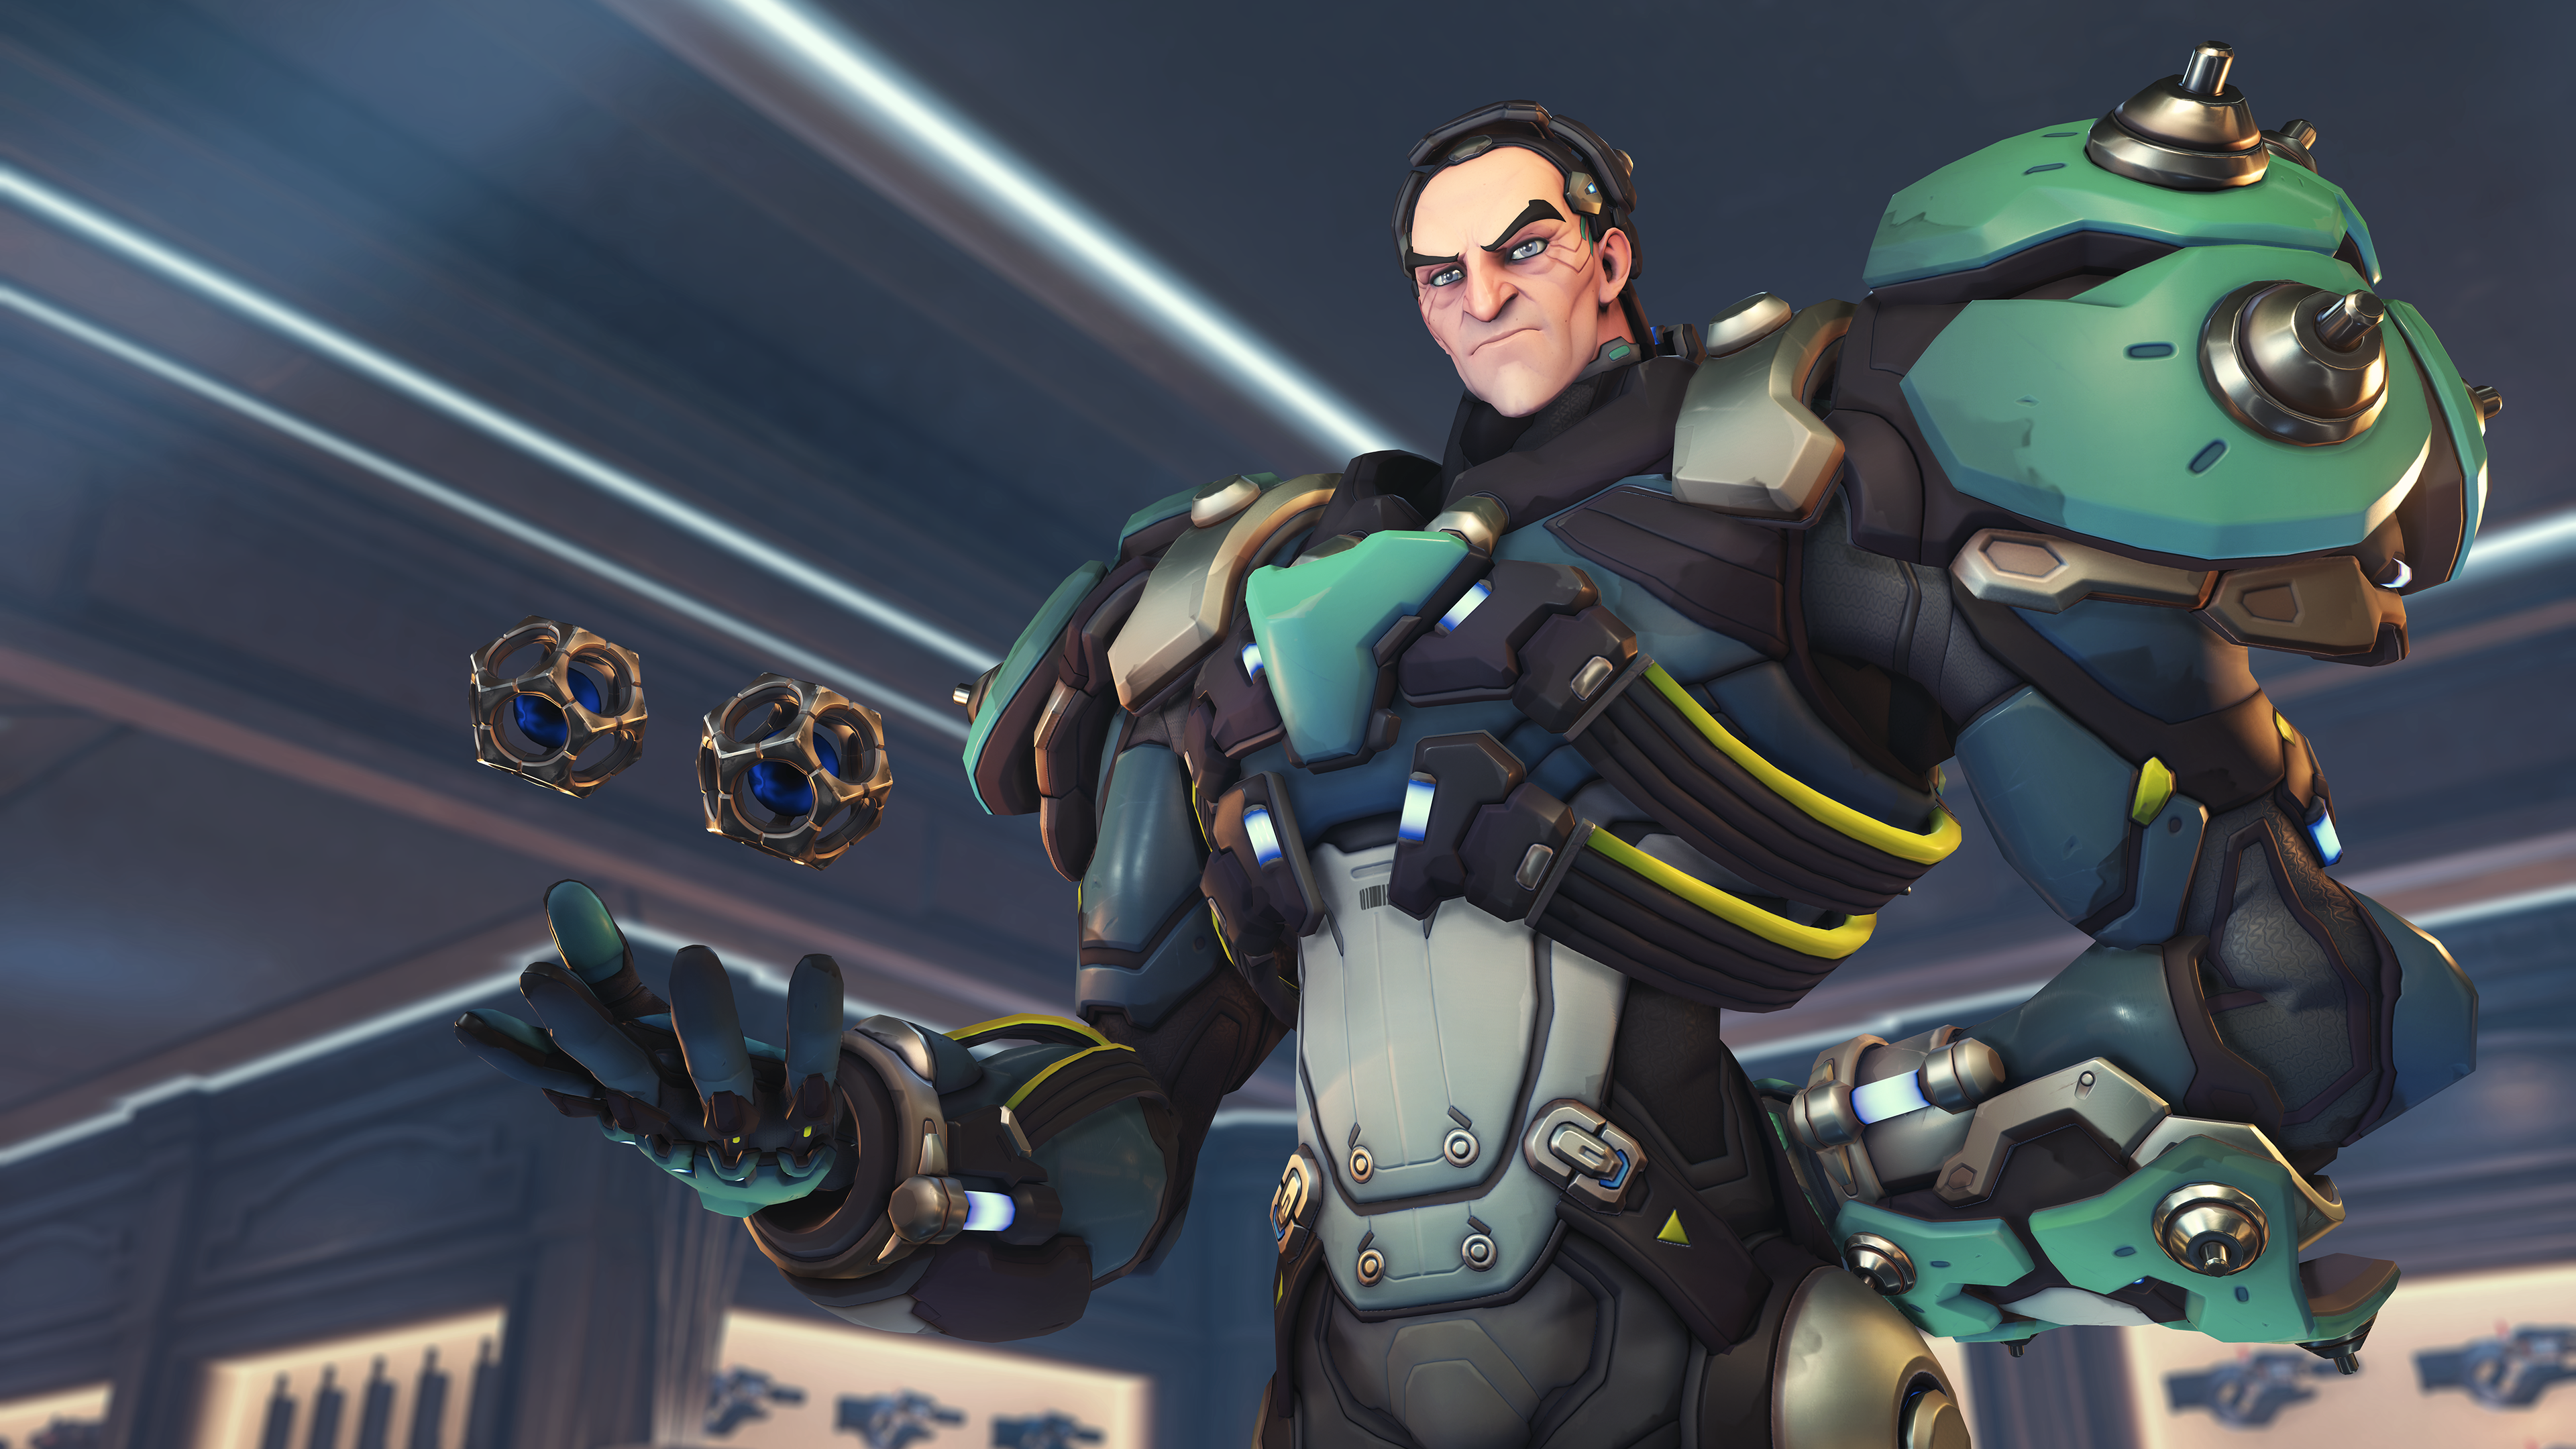 Overwatch Sigma abilities breakdown: Looking at his gravity-defying skills